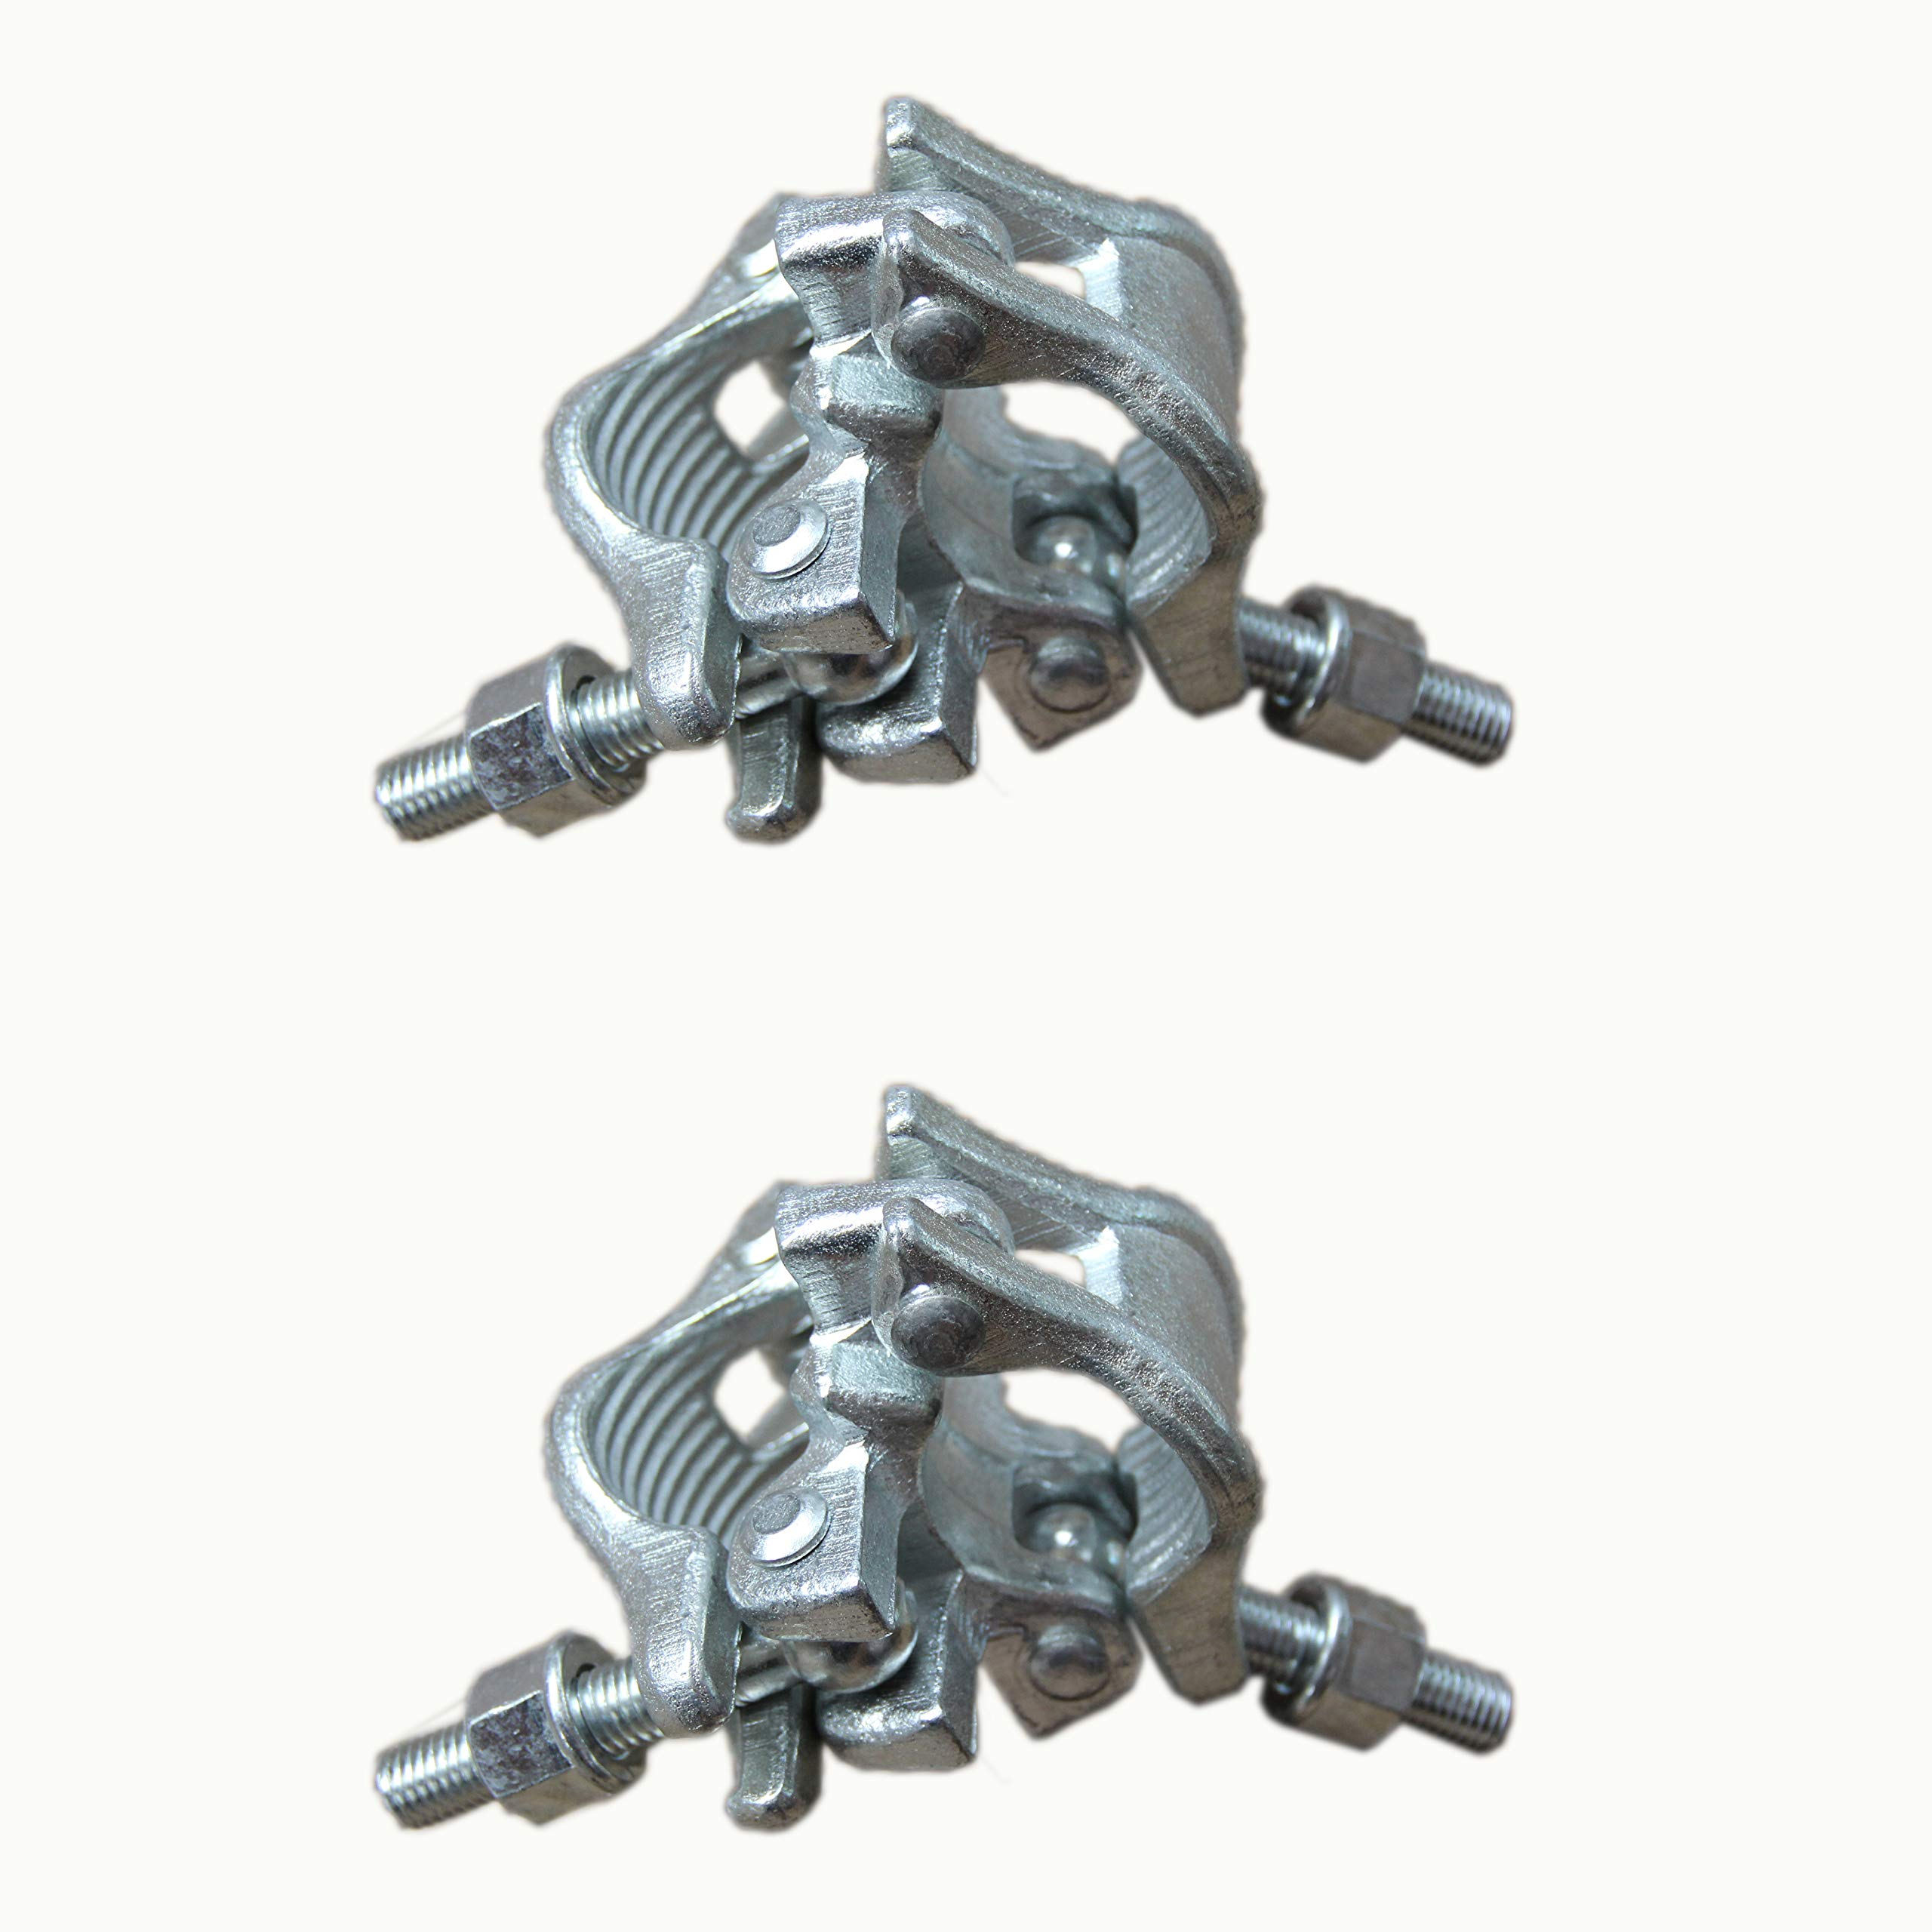 Fixed Right Angle Scaffolding Clamps 2 pcs Brand New Prisms by prisms